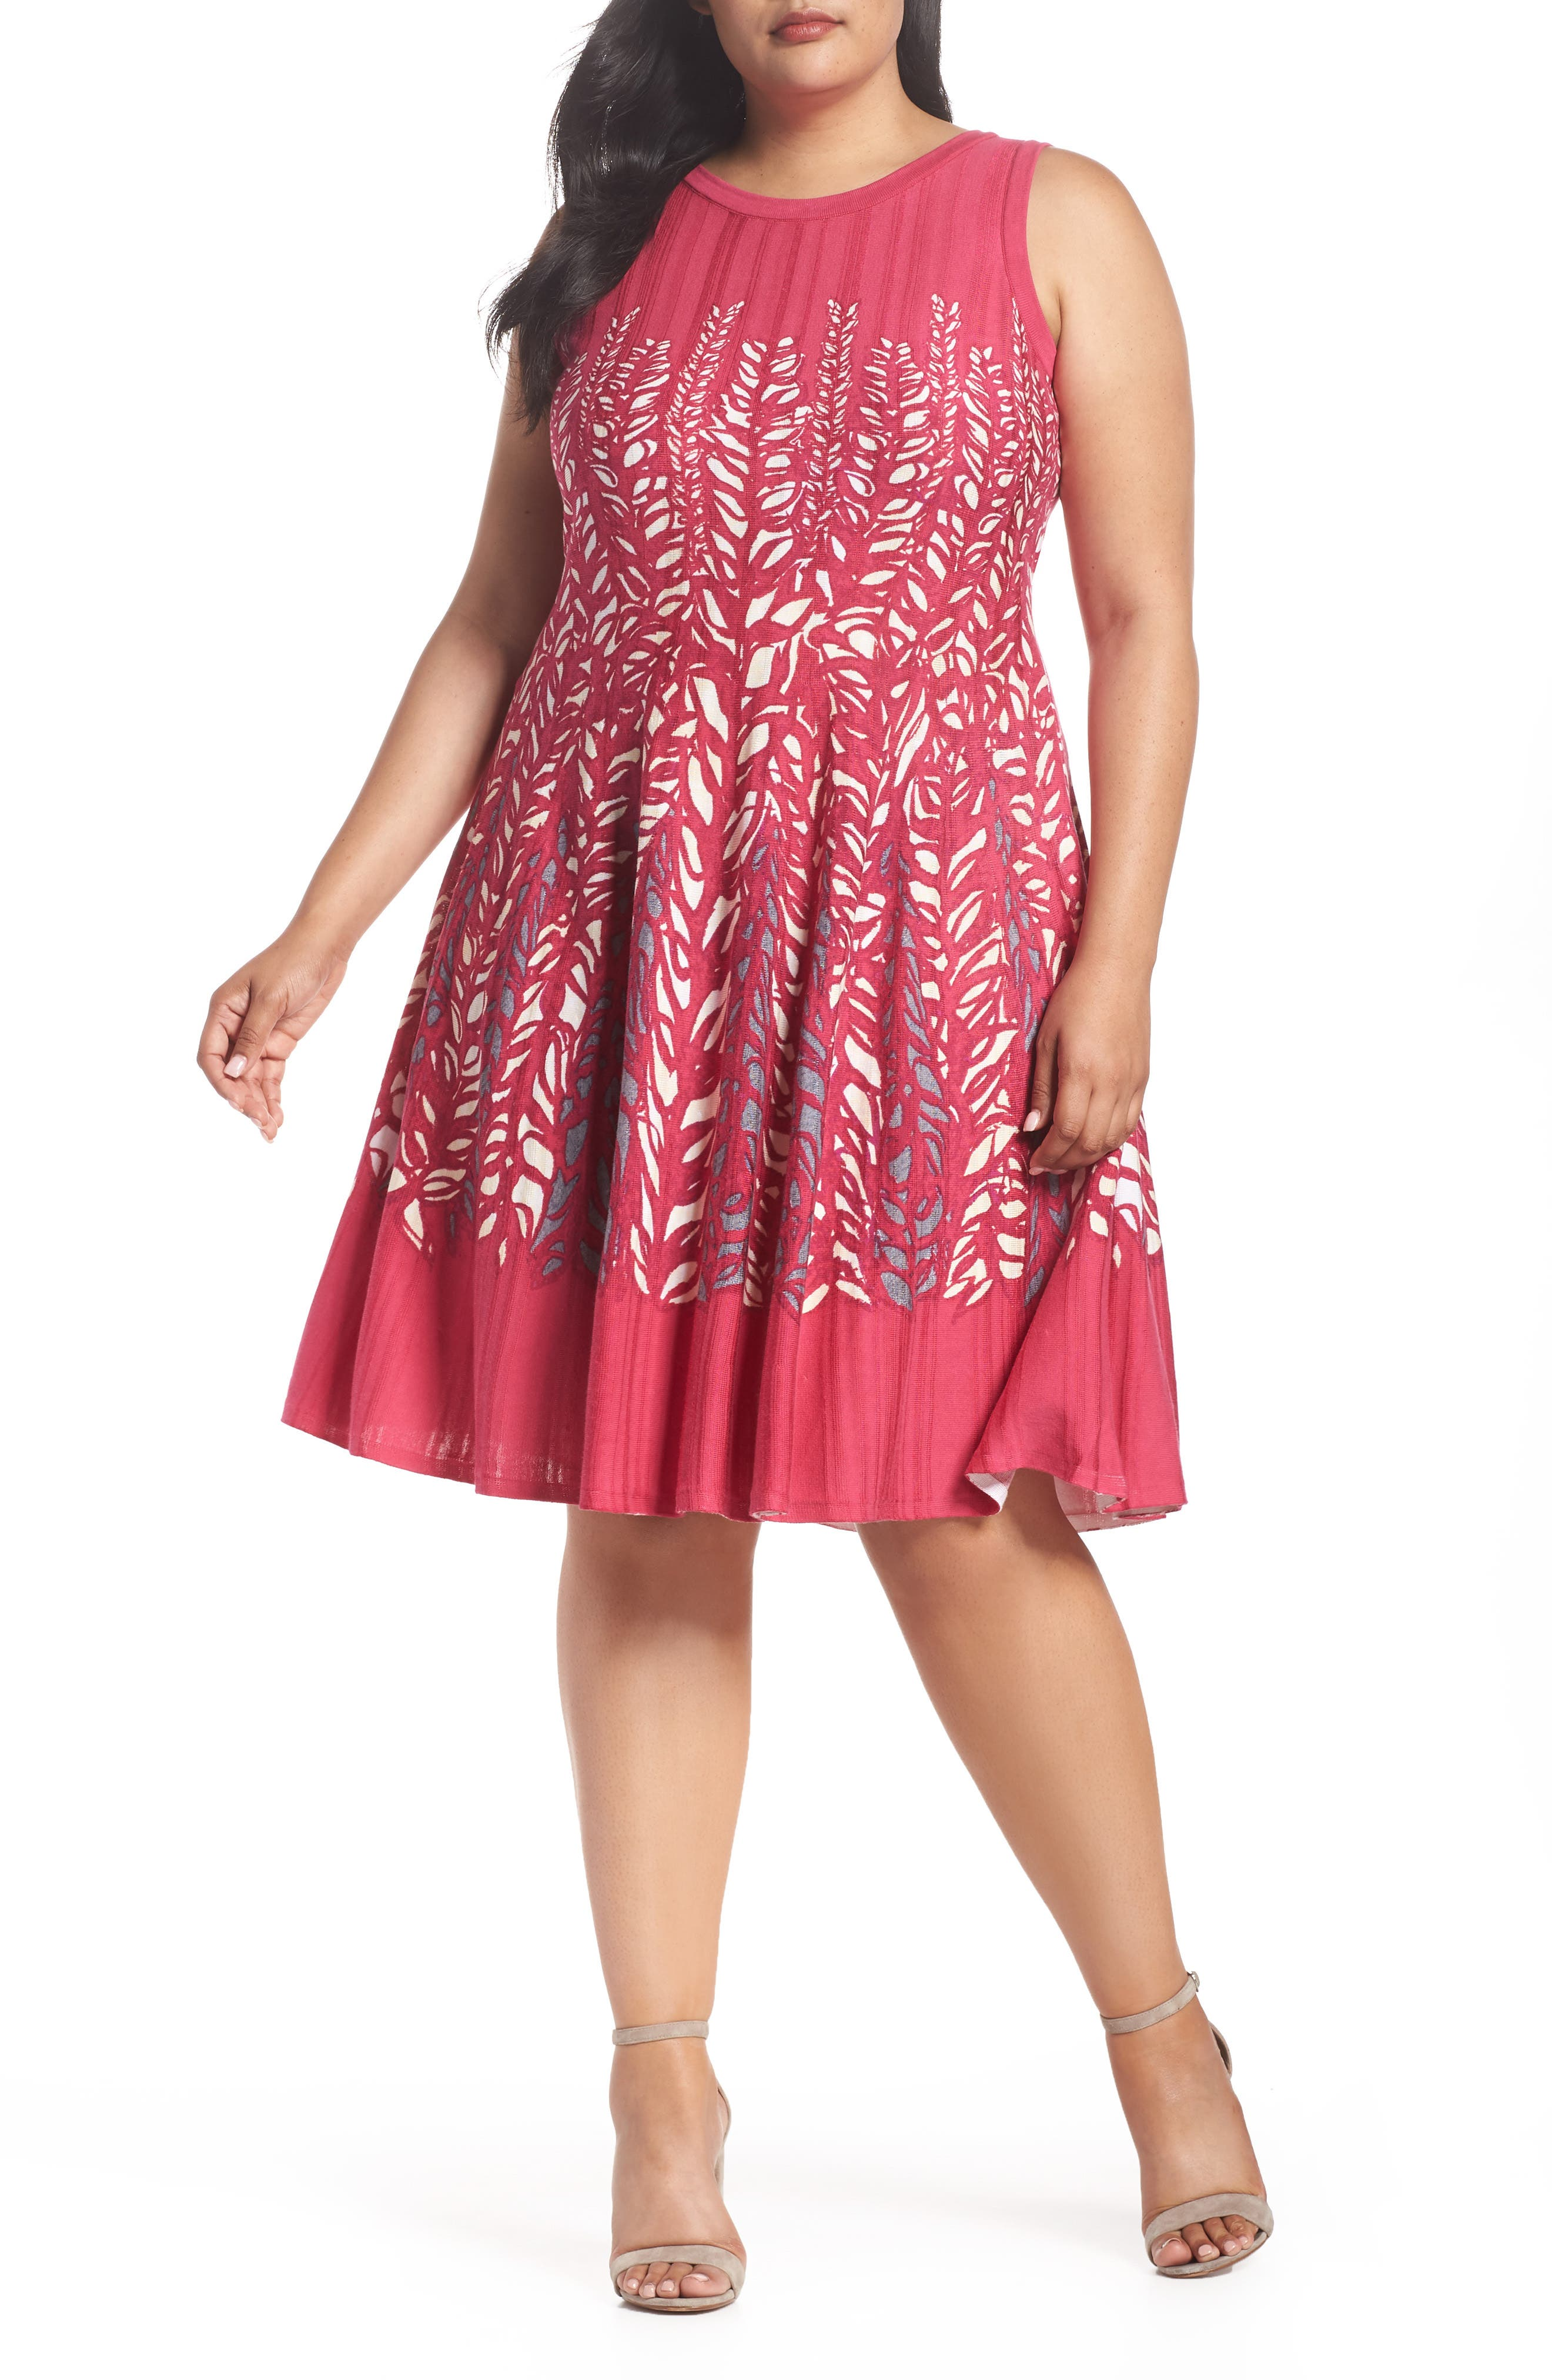 Alternate Image 1 Selected - NIC+ZOE Tango Twirl Fit & Flare Knit Dress (Plus Size)